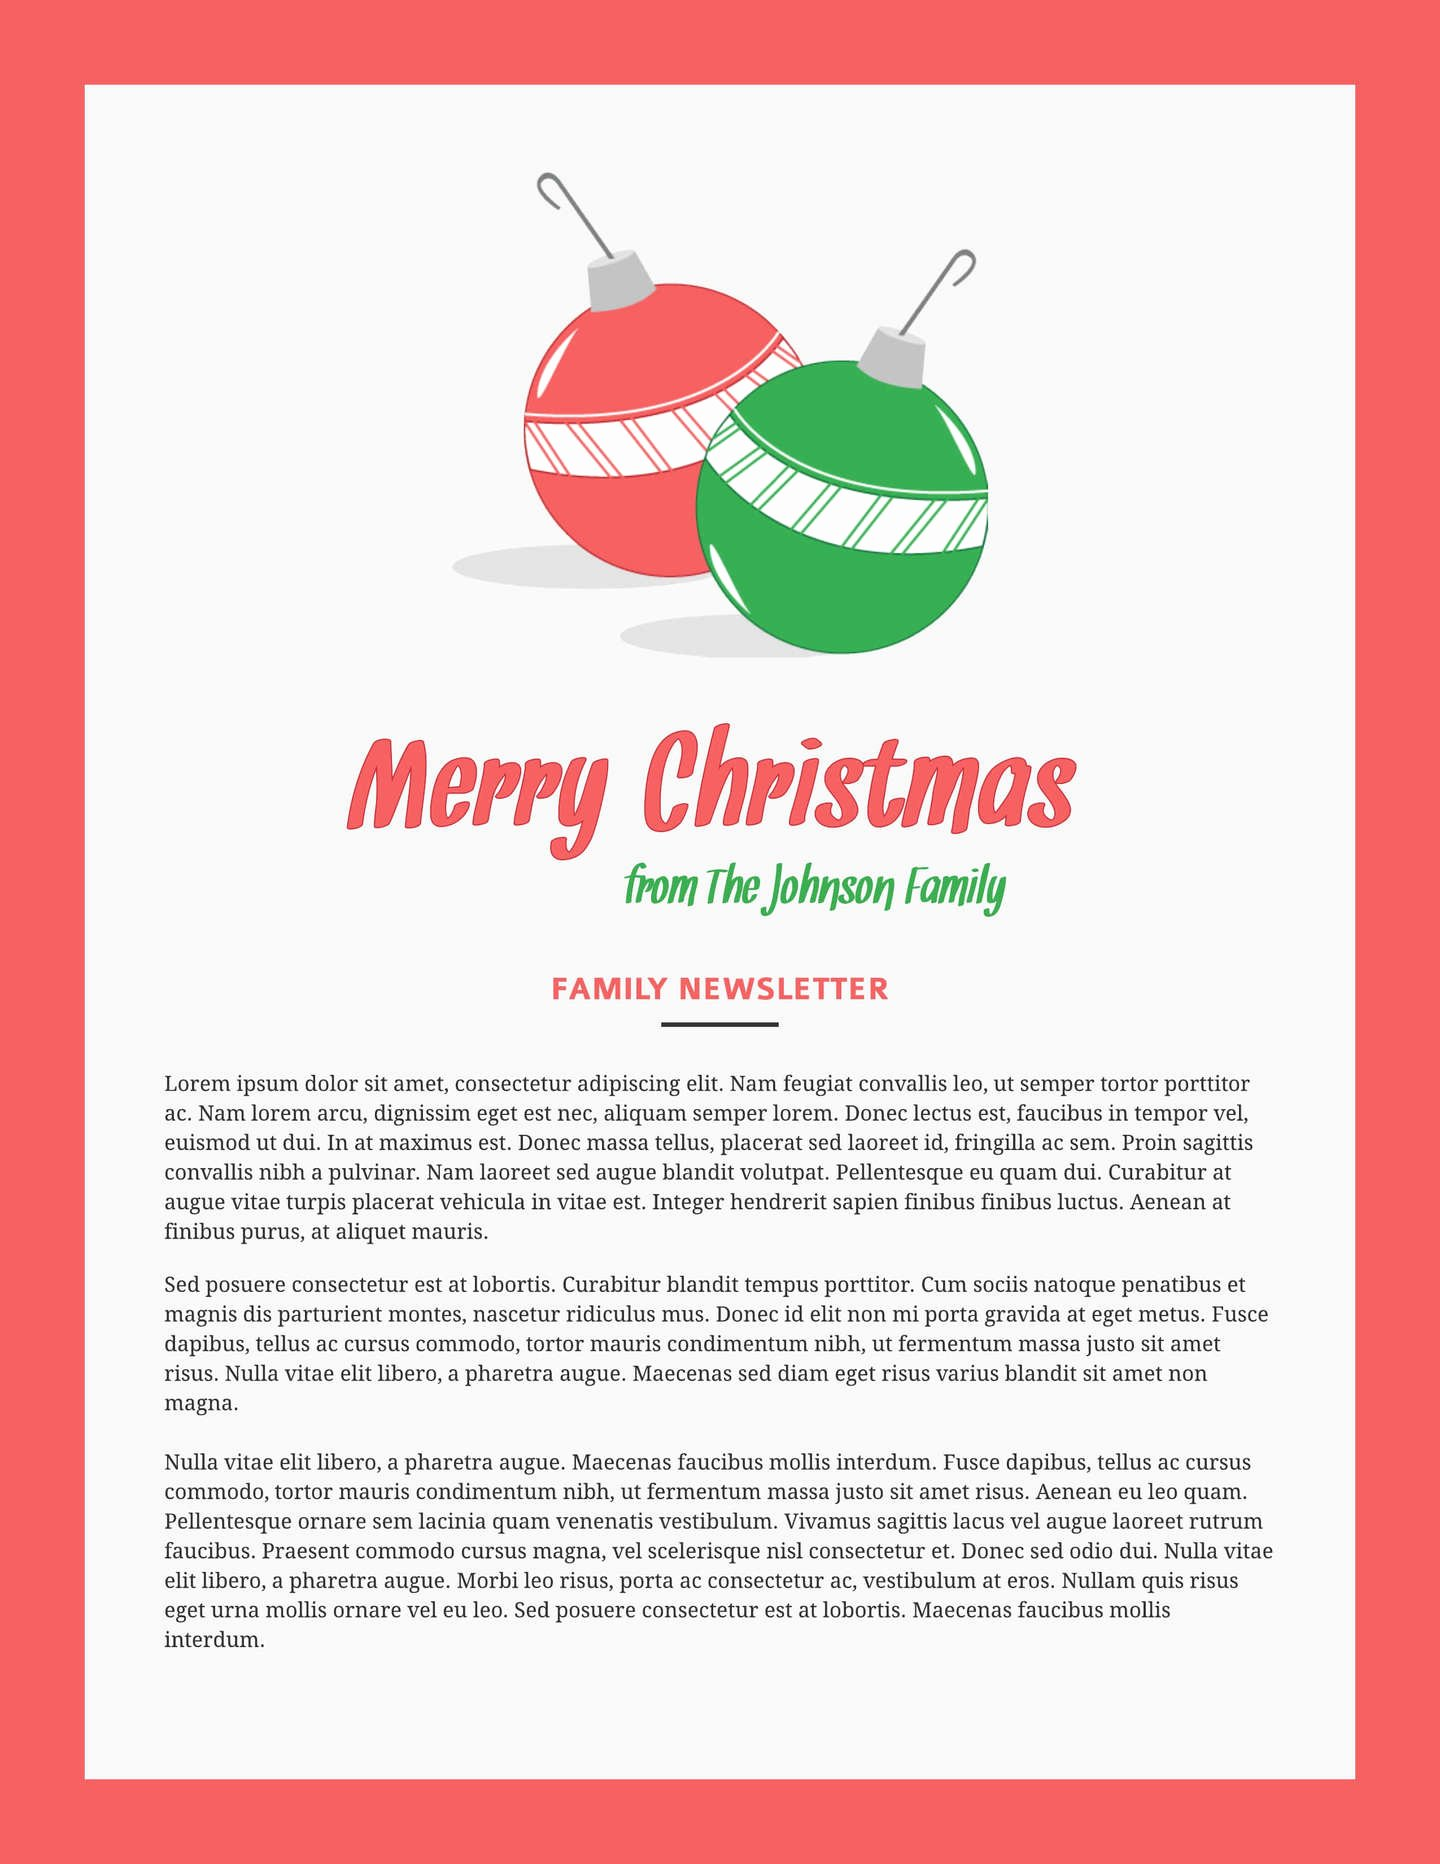 Winter Newsletter Template Free New Print and Win Holiday Sweepstakes